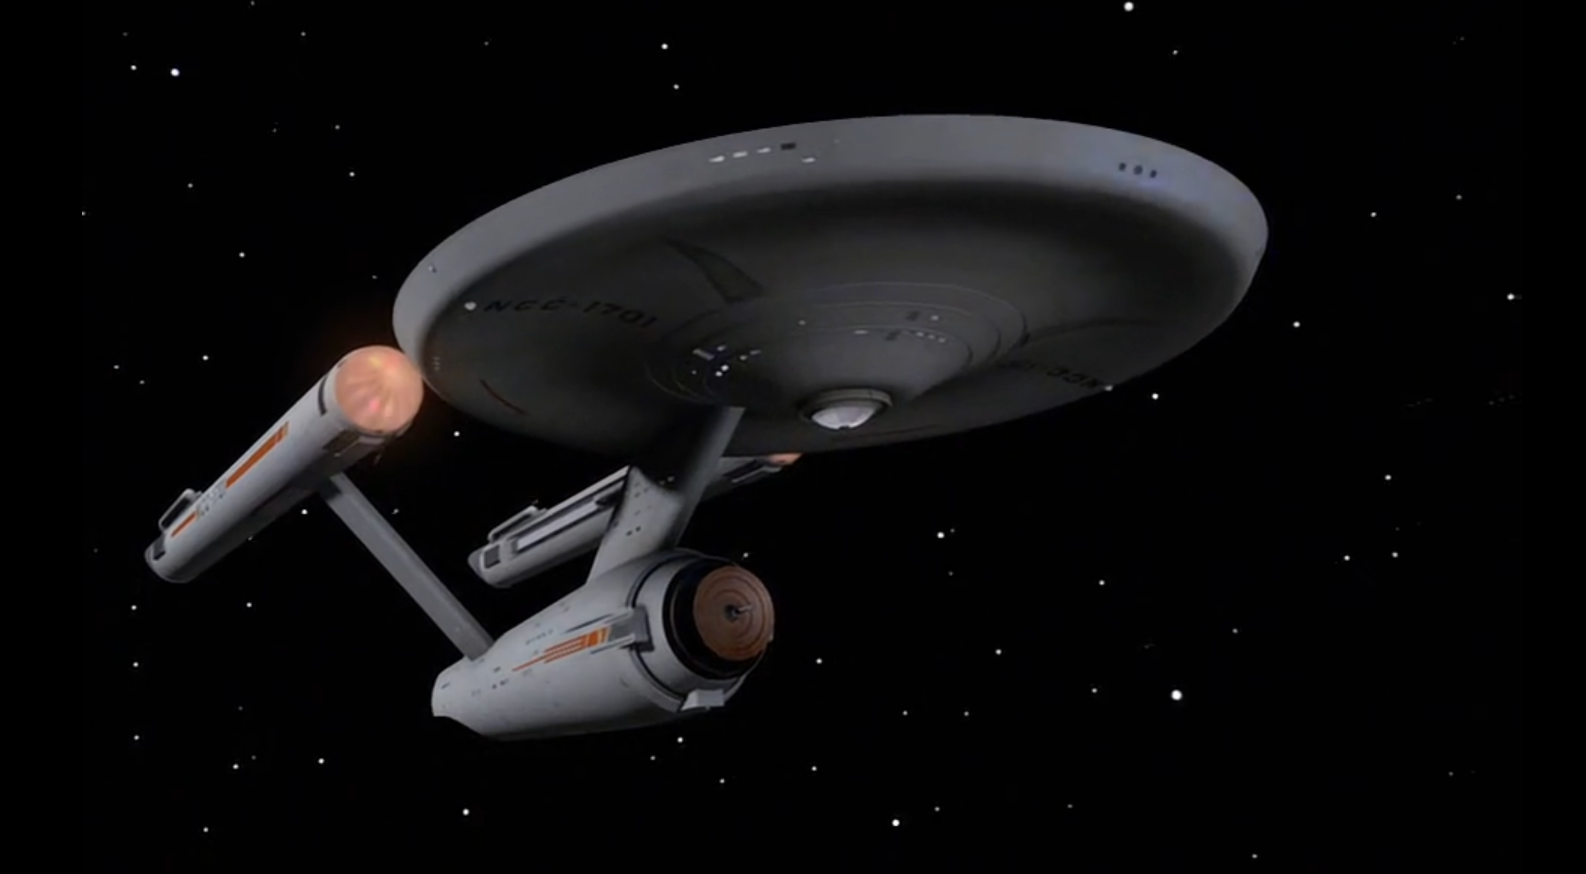 star trek s original series brought the cold war into space